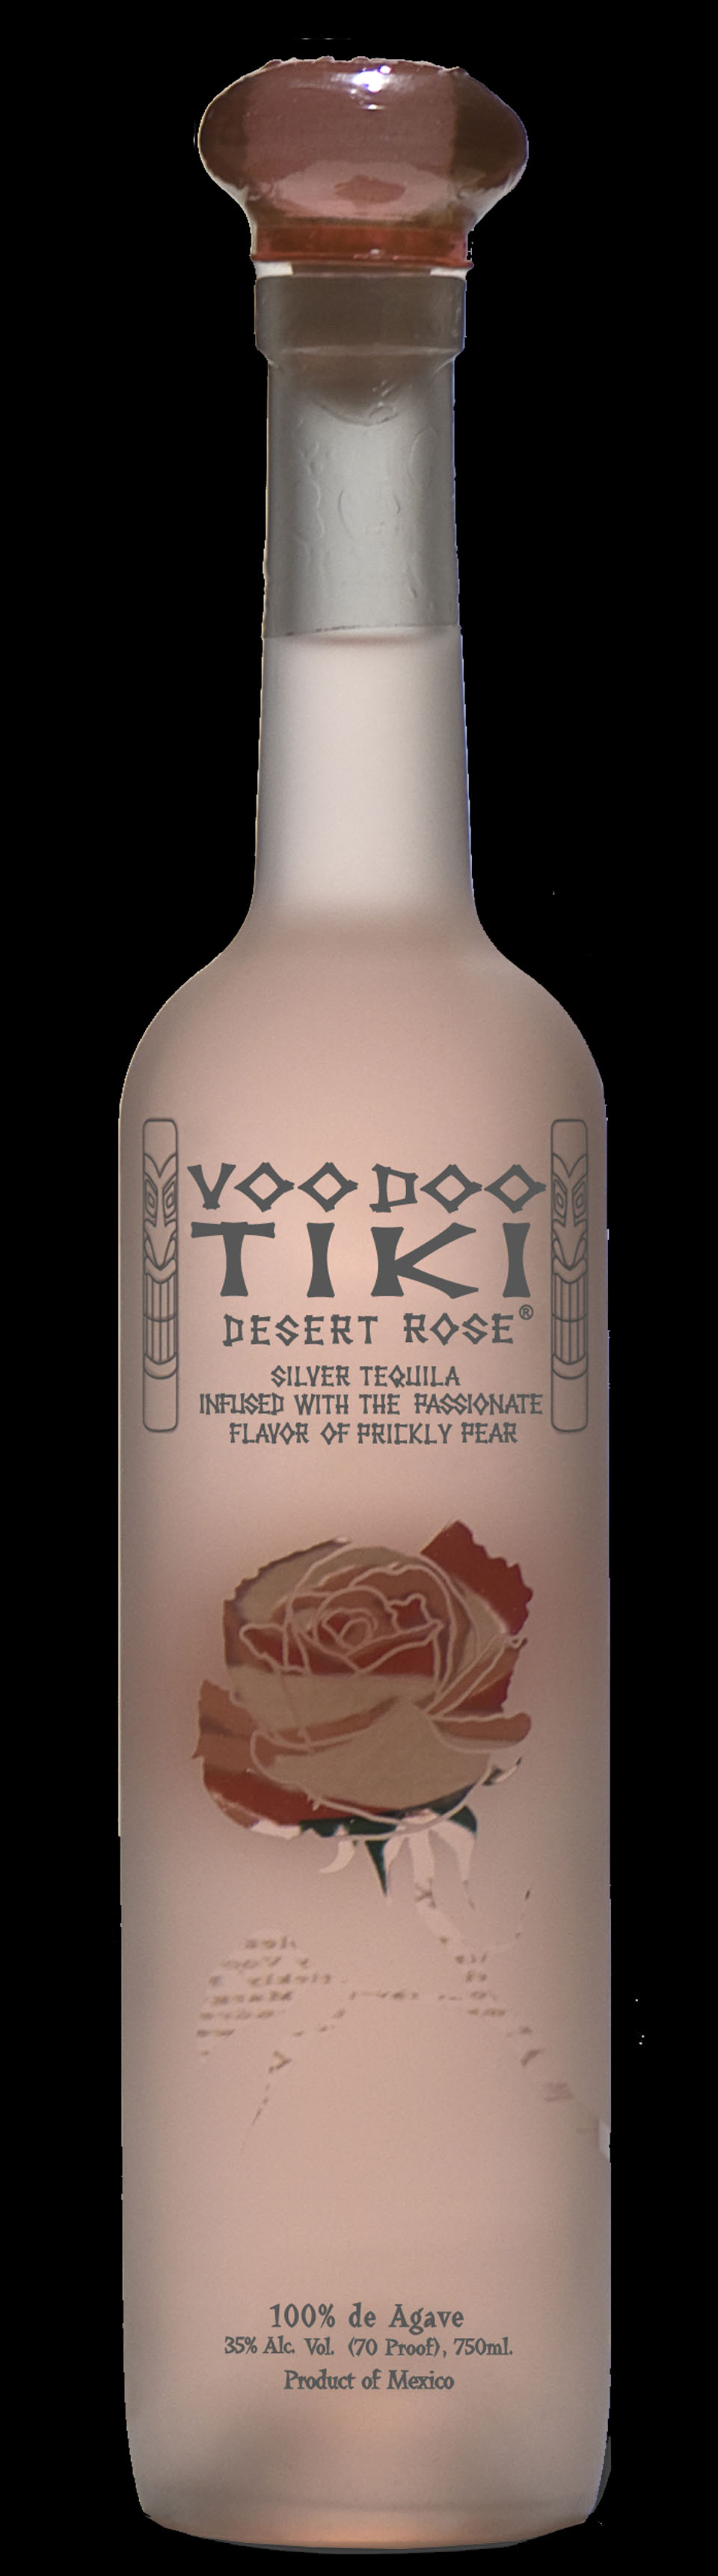 Voodoo Tiki_Prickly Pear_Bottle_2011_low Res